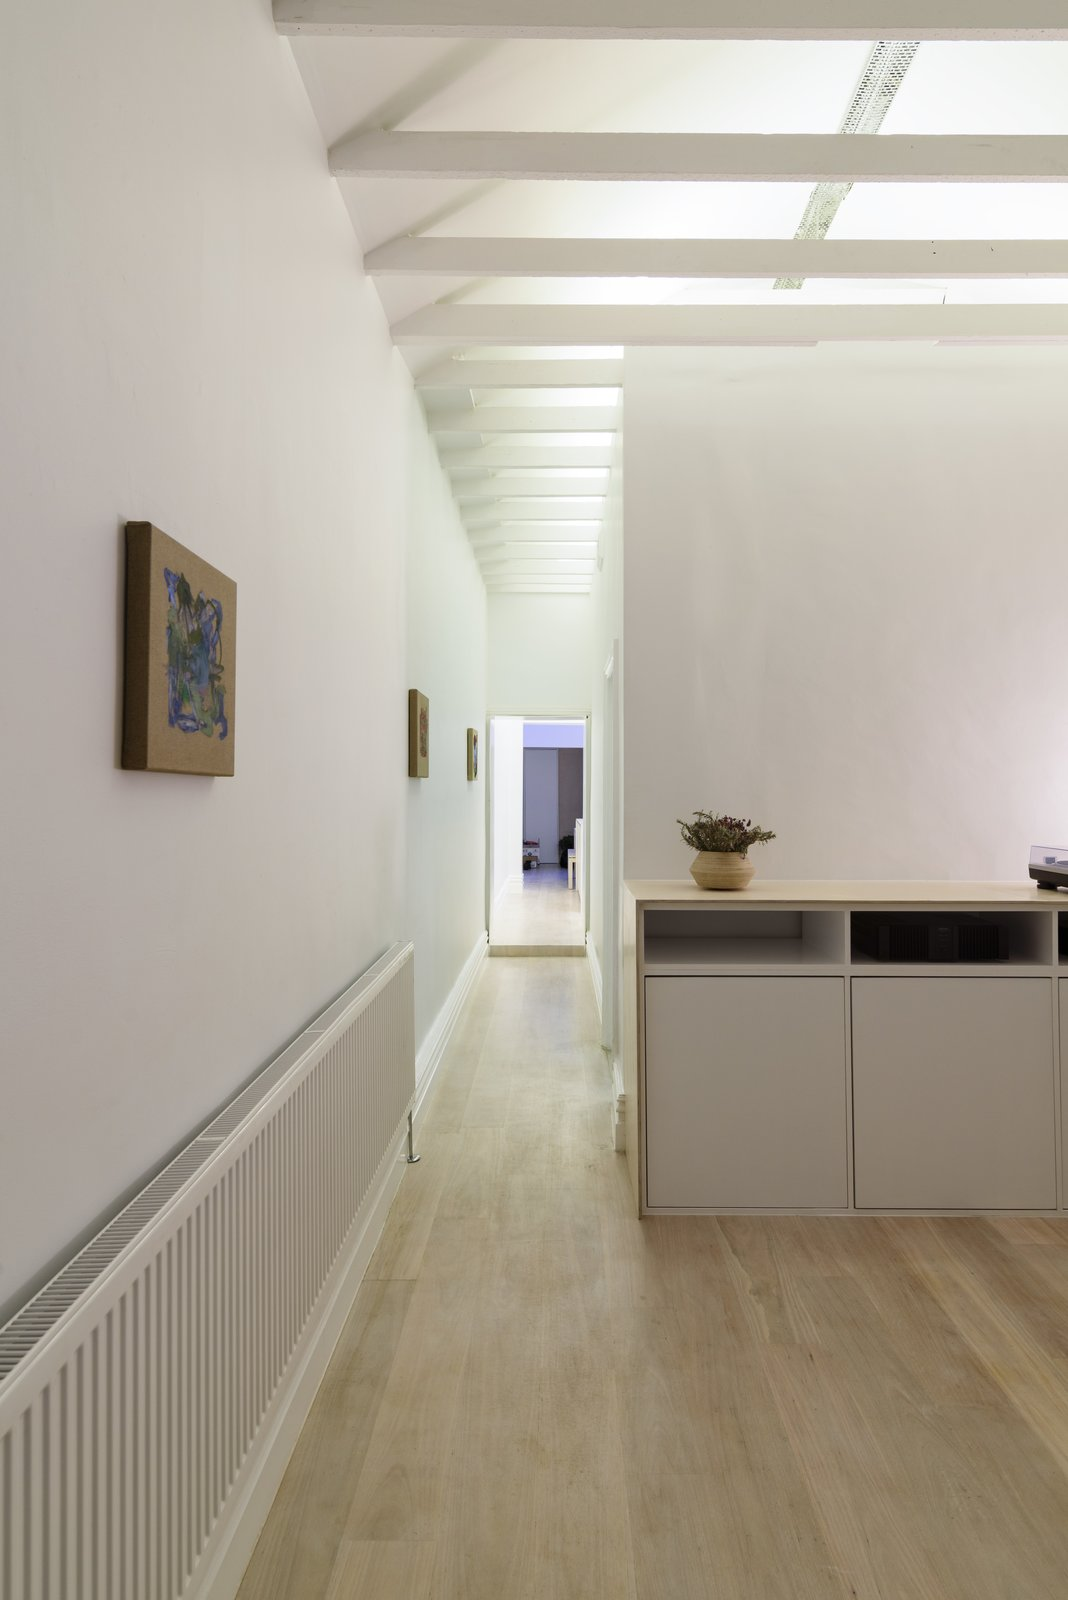 Light Hardwood Floor, Ceiling Lighting, Recessed Lighting, Console Tables, and Living Room Corridor (Night)  Curtain Cottage